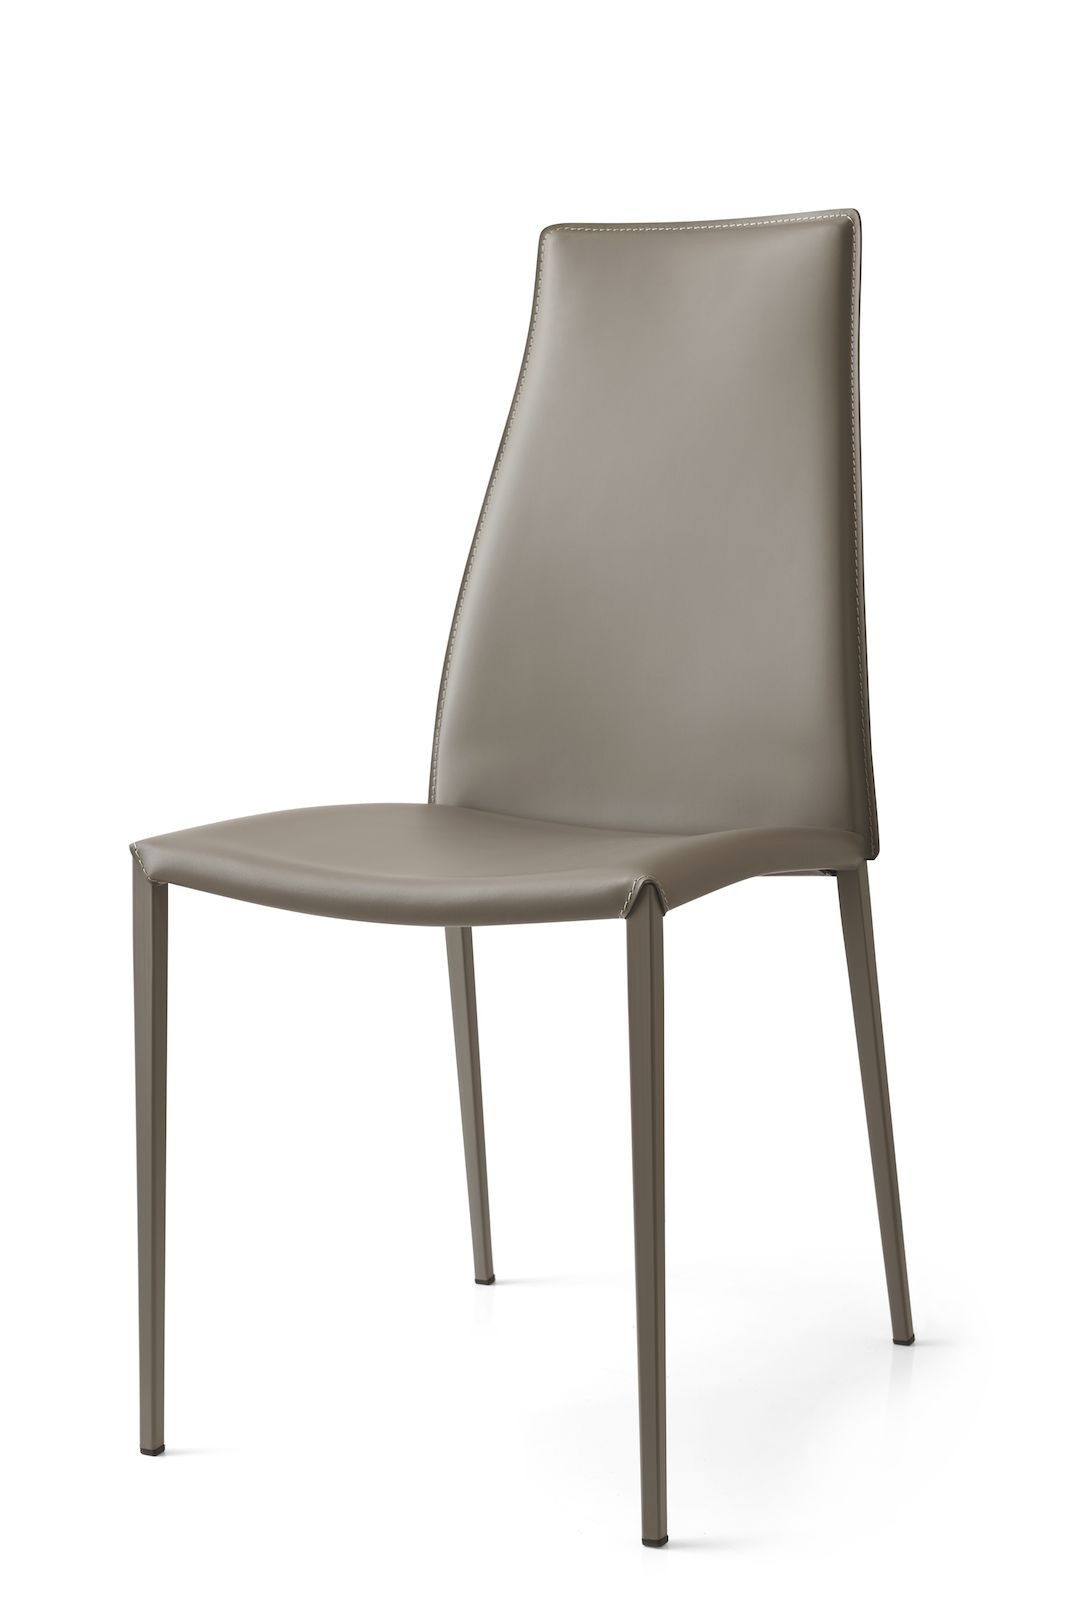 Calligaris Chairs Calligaris Aida Dining Chair Frank Mc Gowan